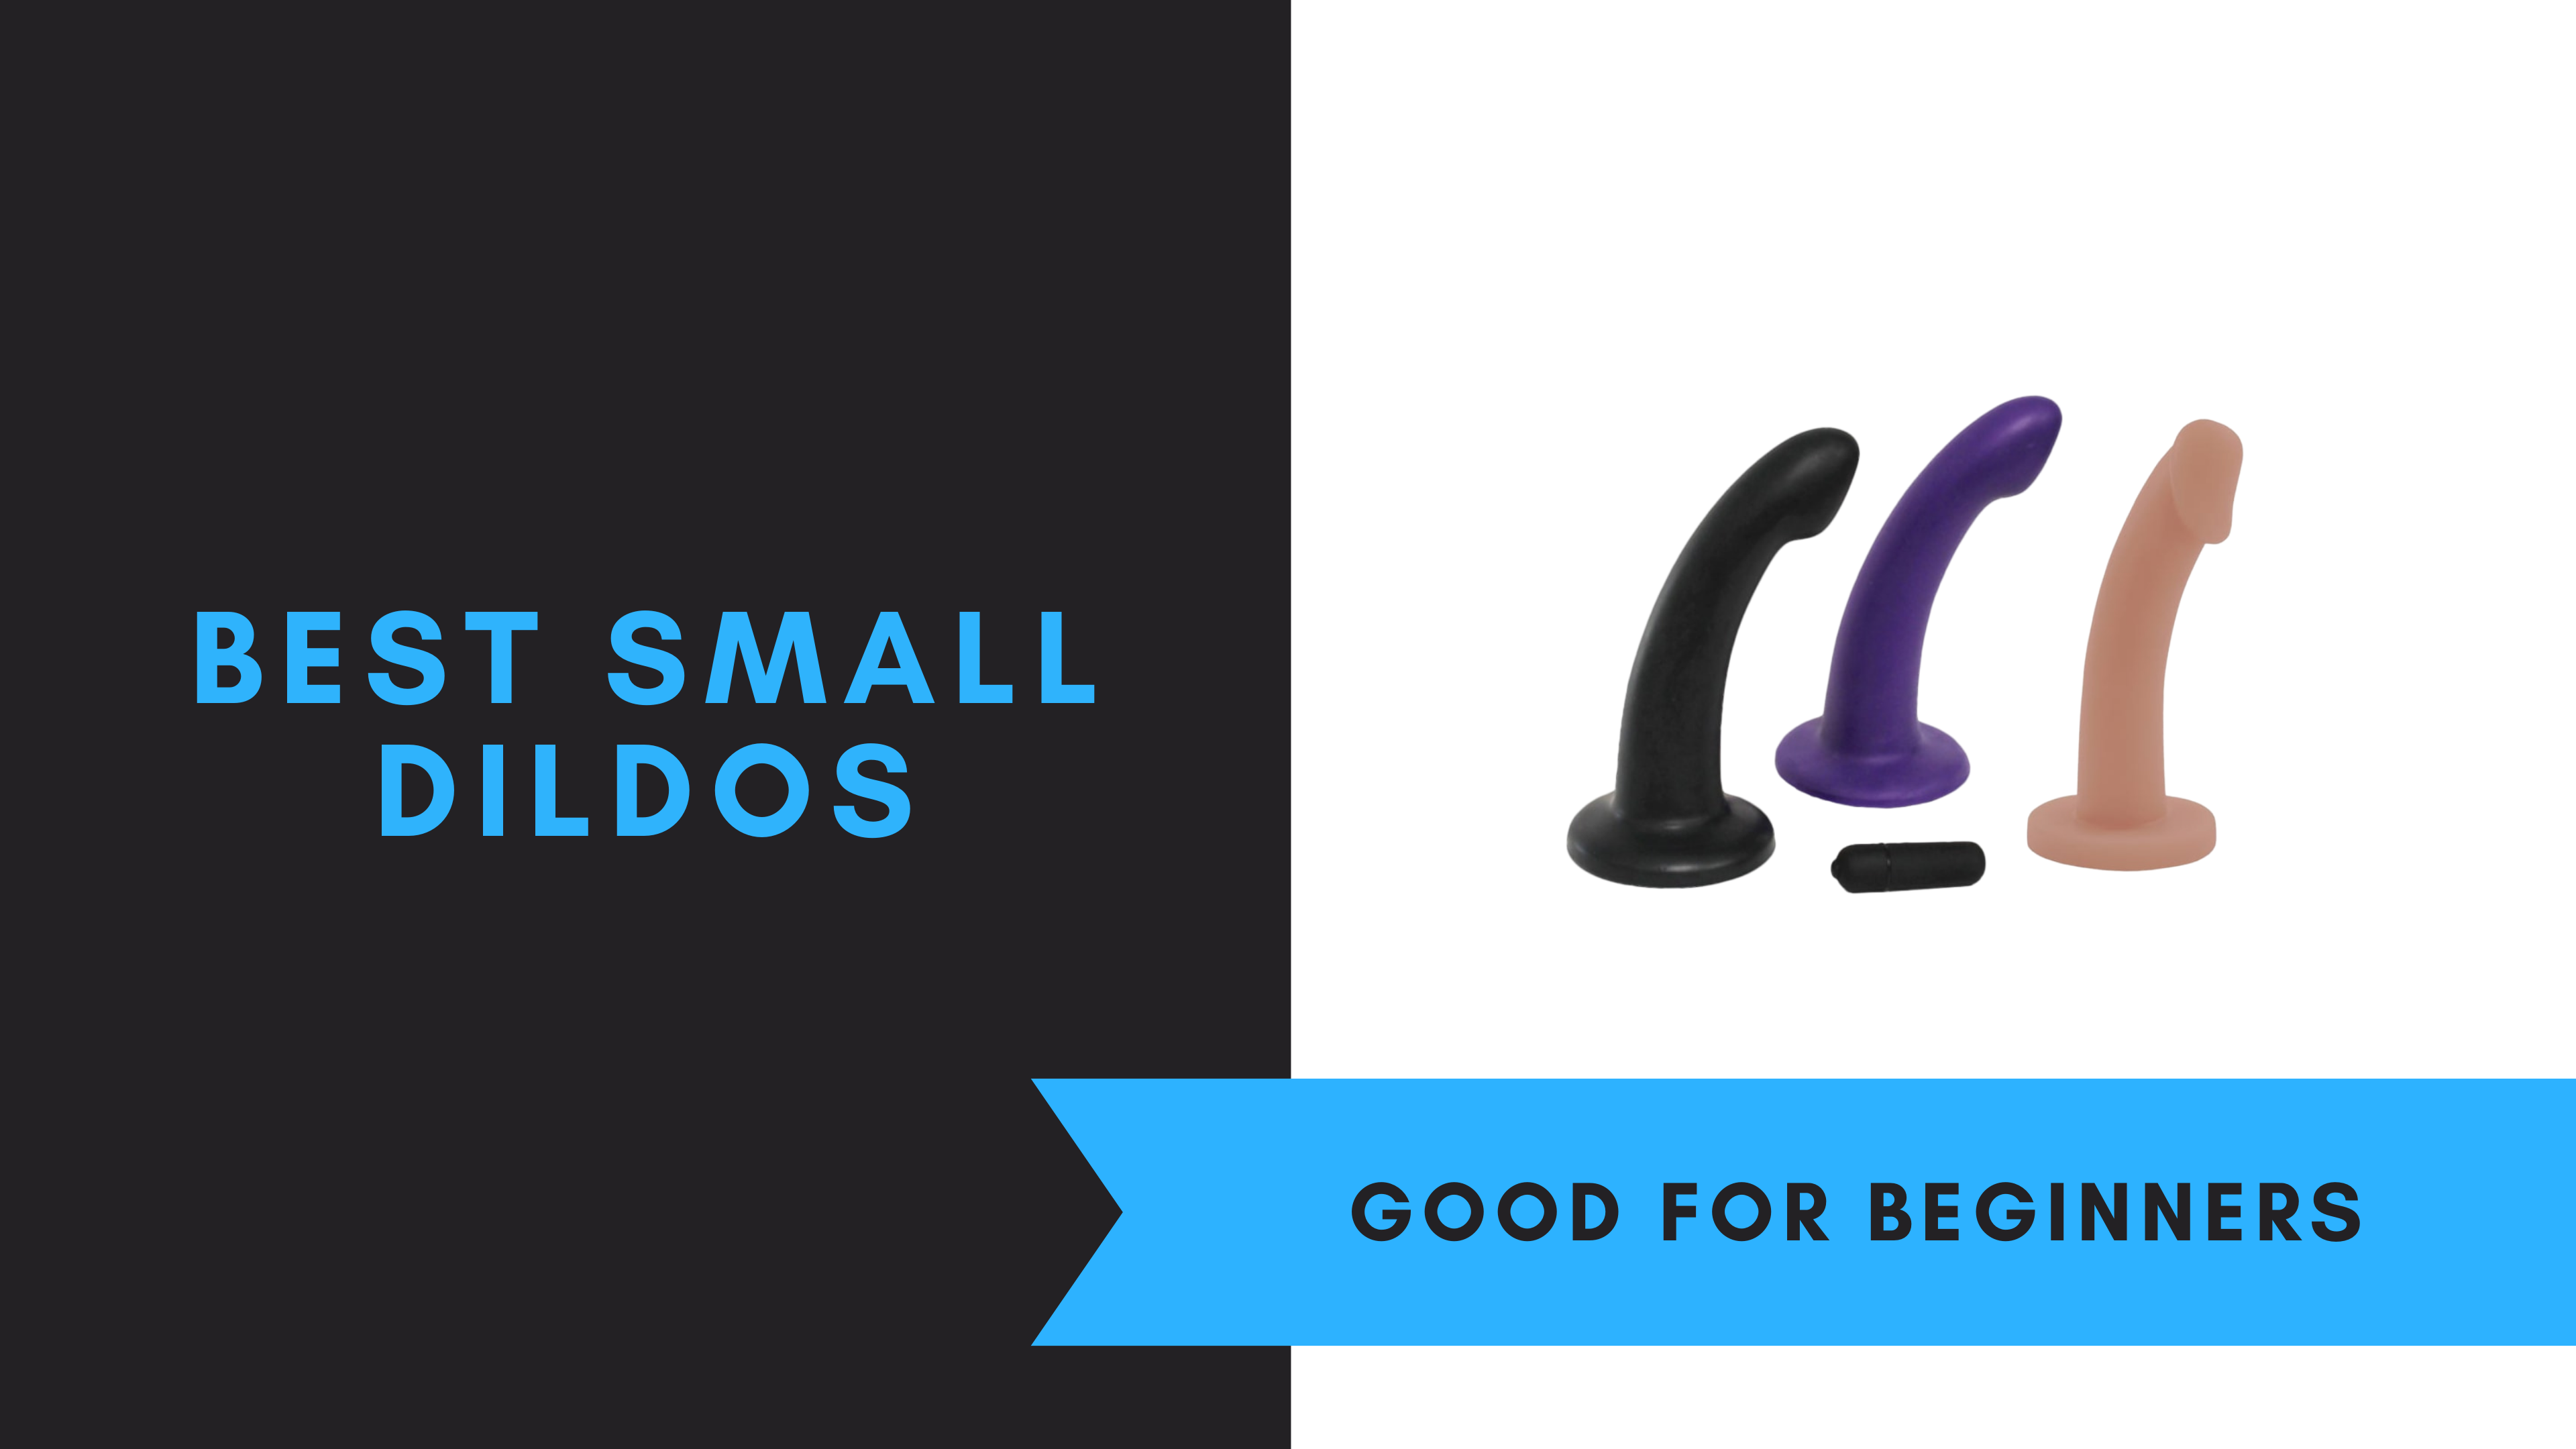 Best Small Dildos